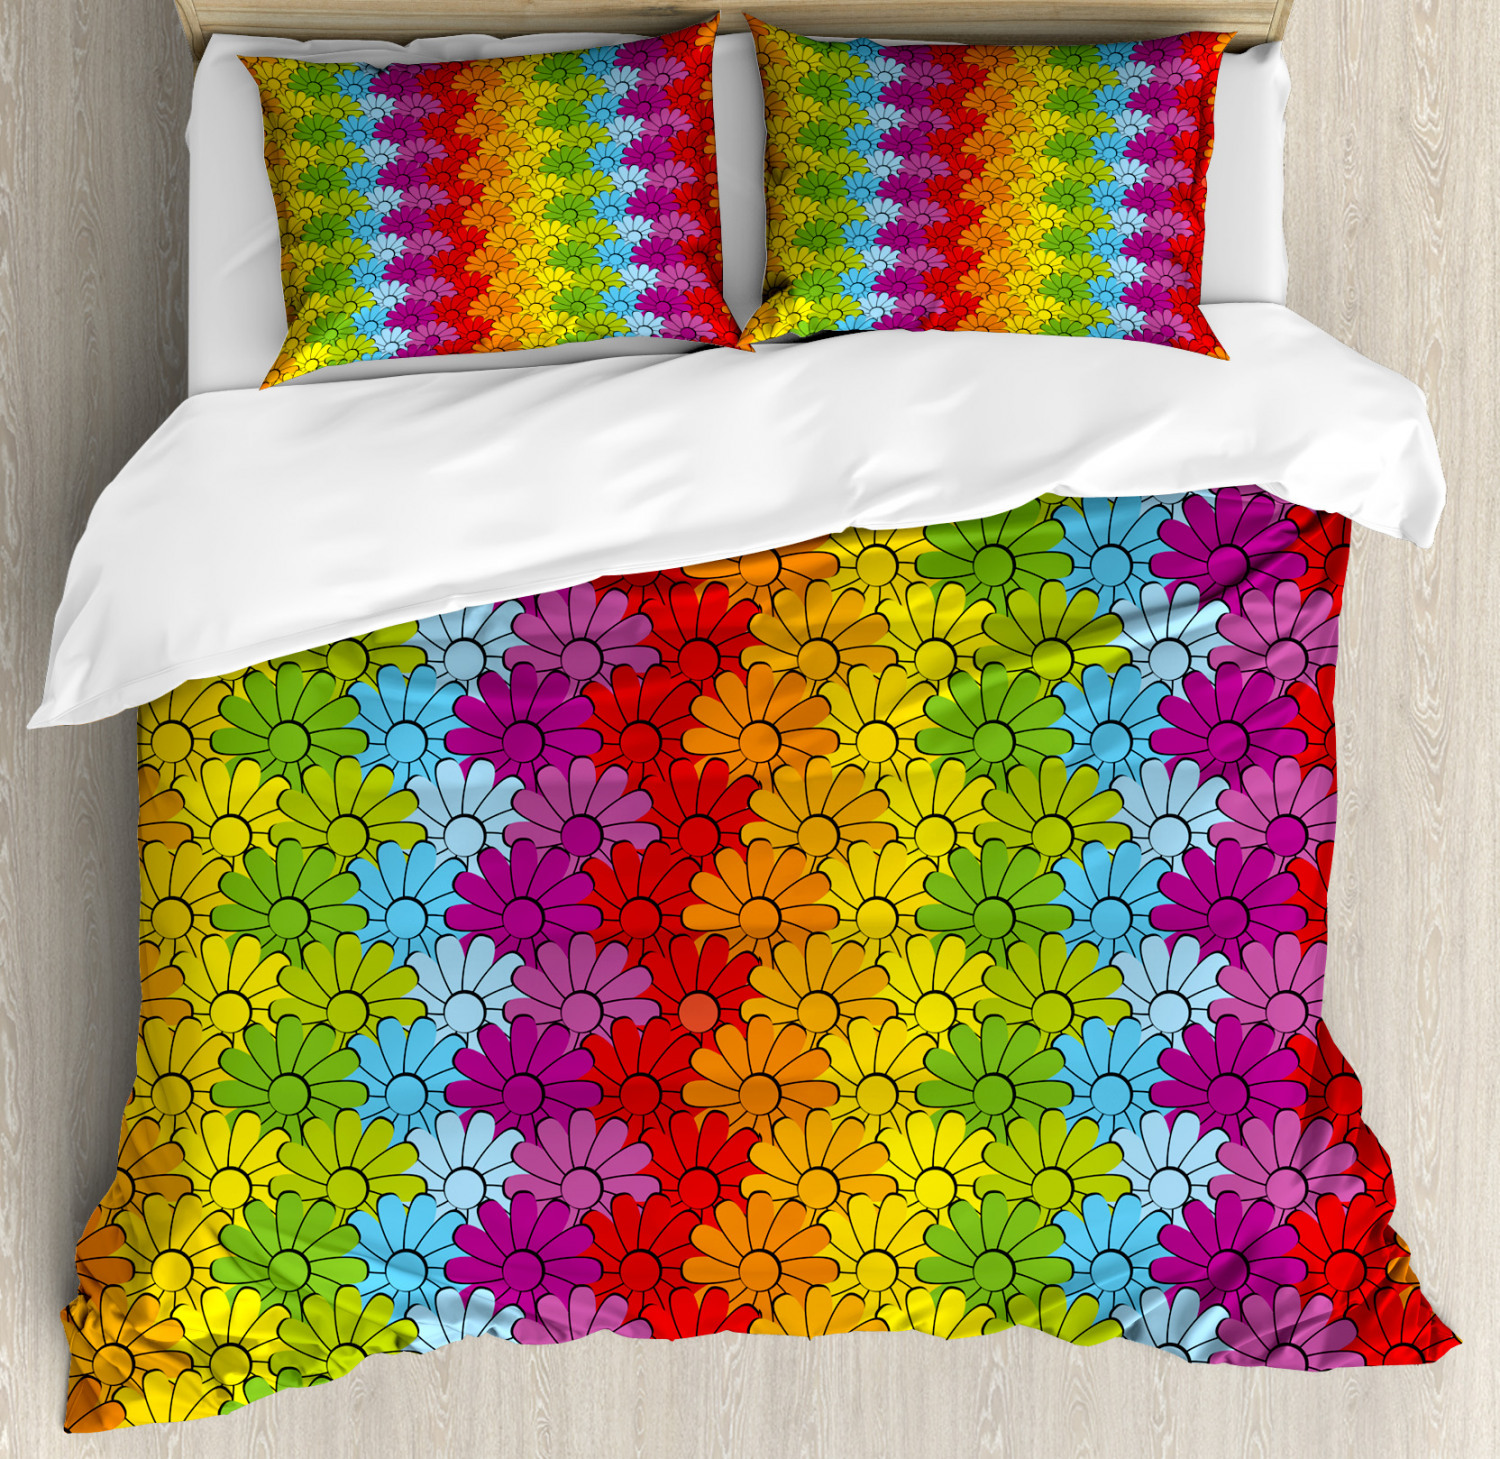 Floral Duvet Cover Set with Pillow Shams Rainbow Coloreeosso Flowers Print